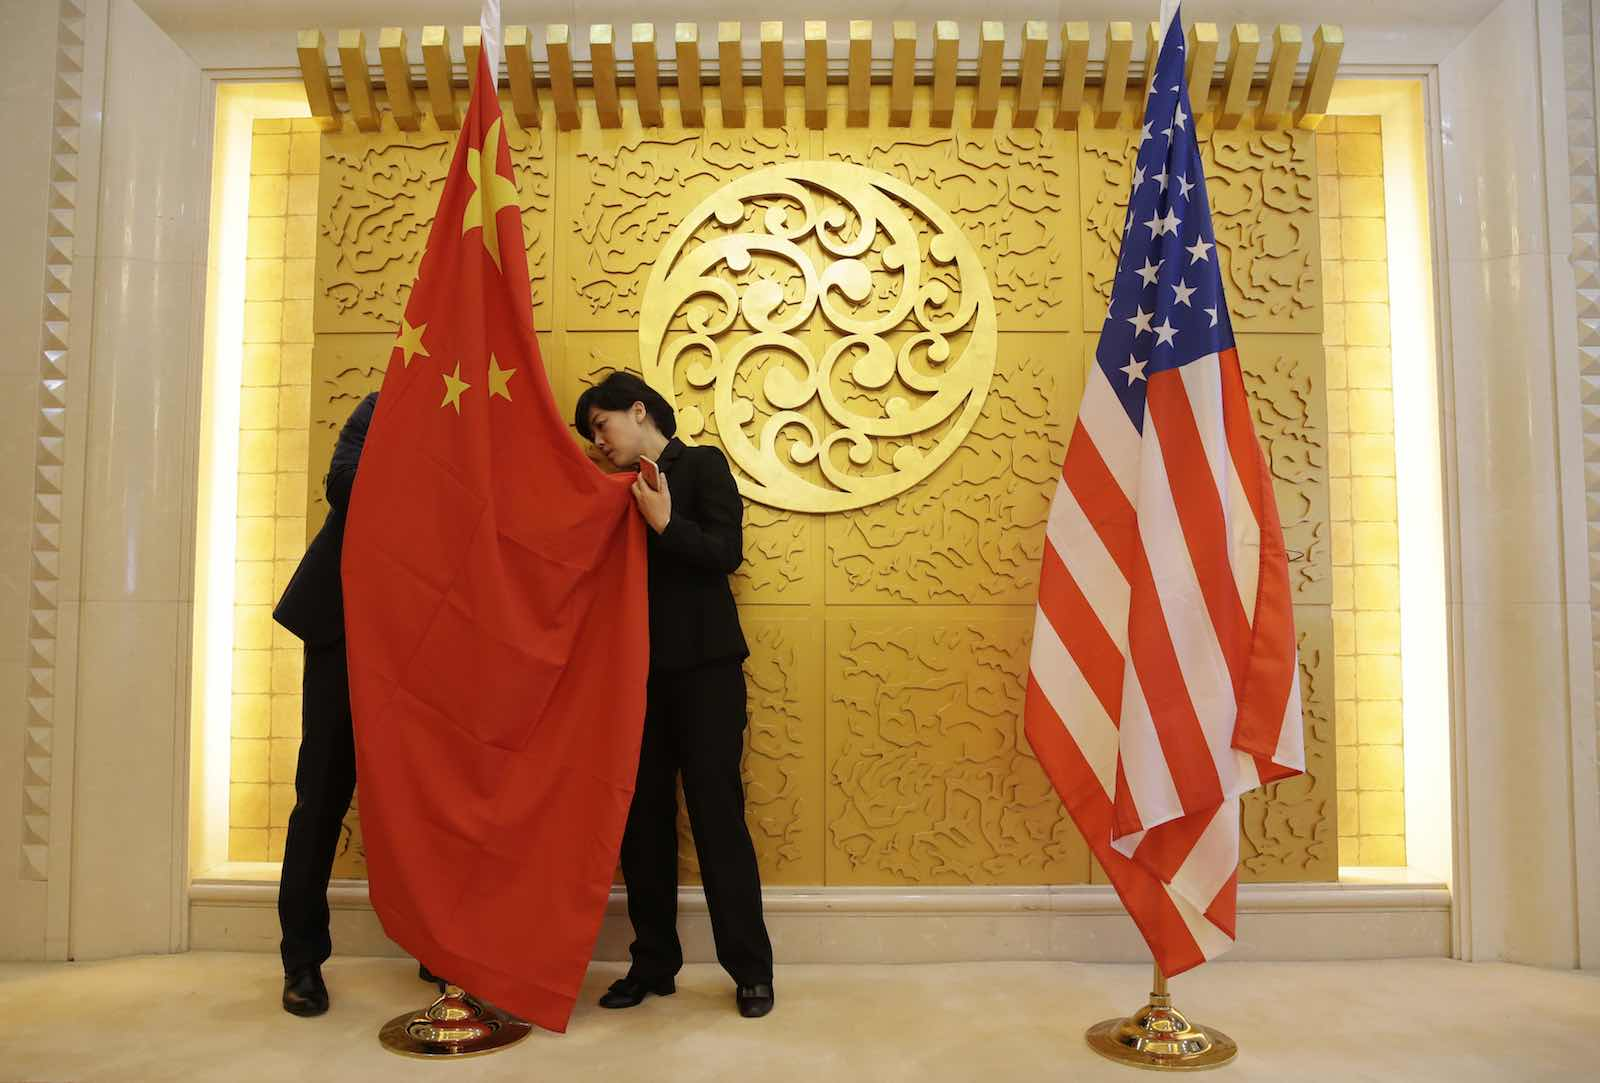 China's rhetorical deference to international law masks the more subversive consequence of its actions to redraw boundaries (Jason Lee/AFP via Getty Images)